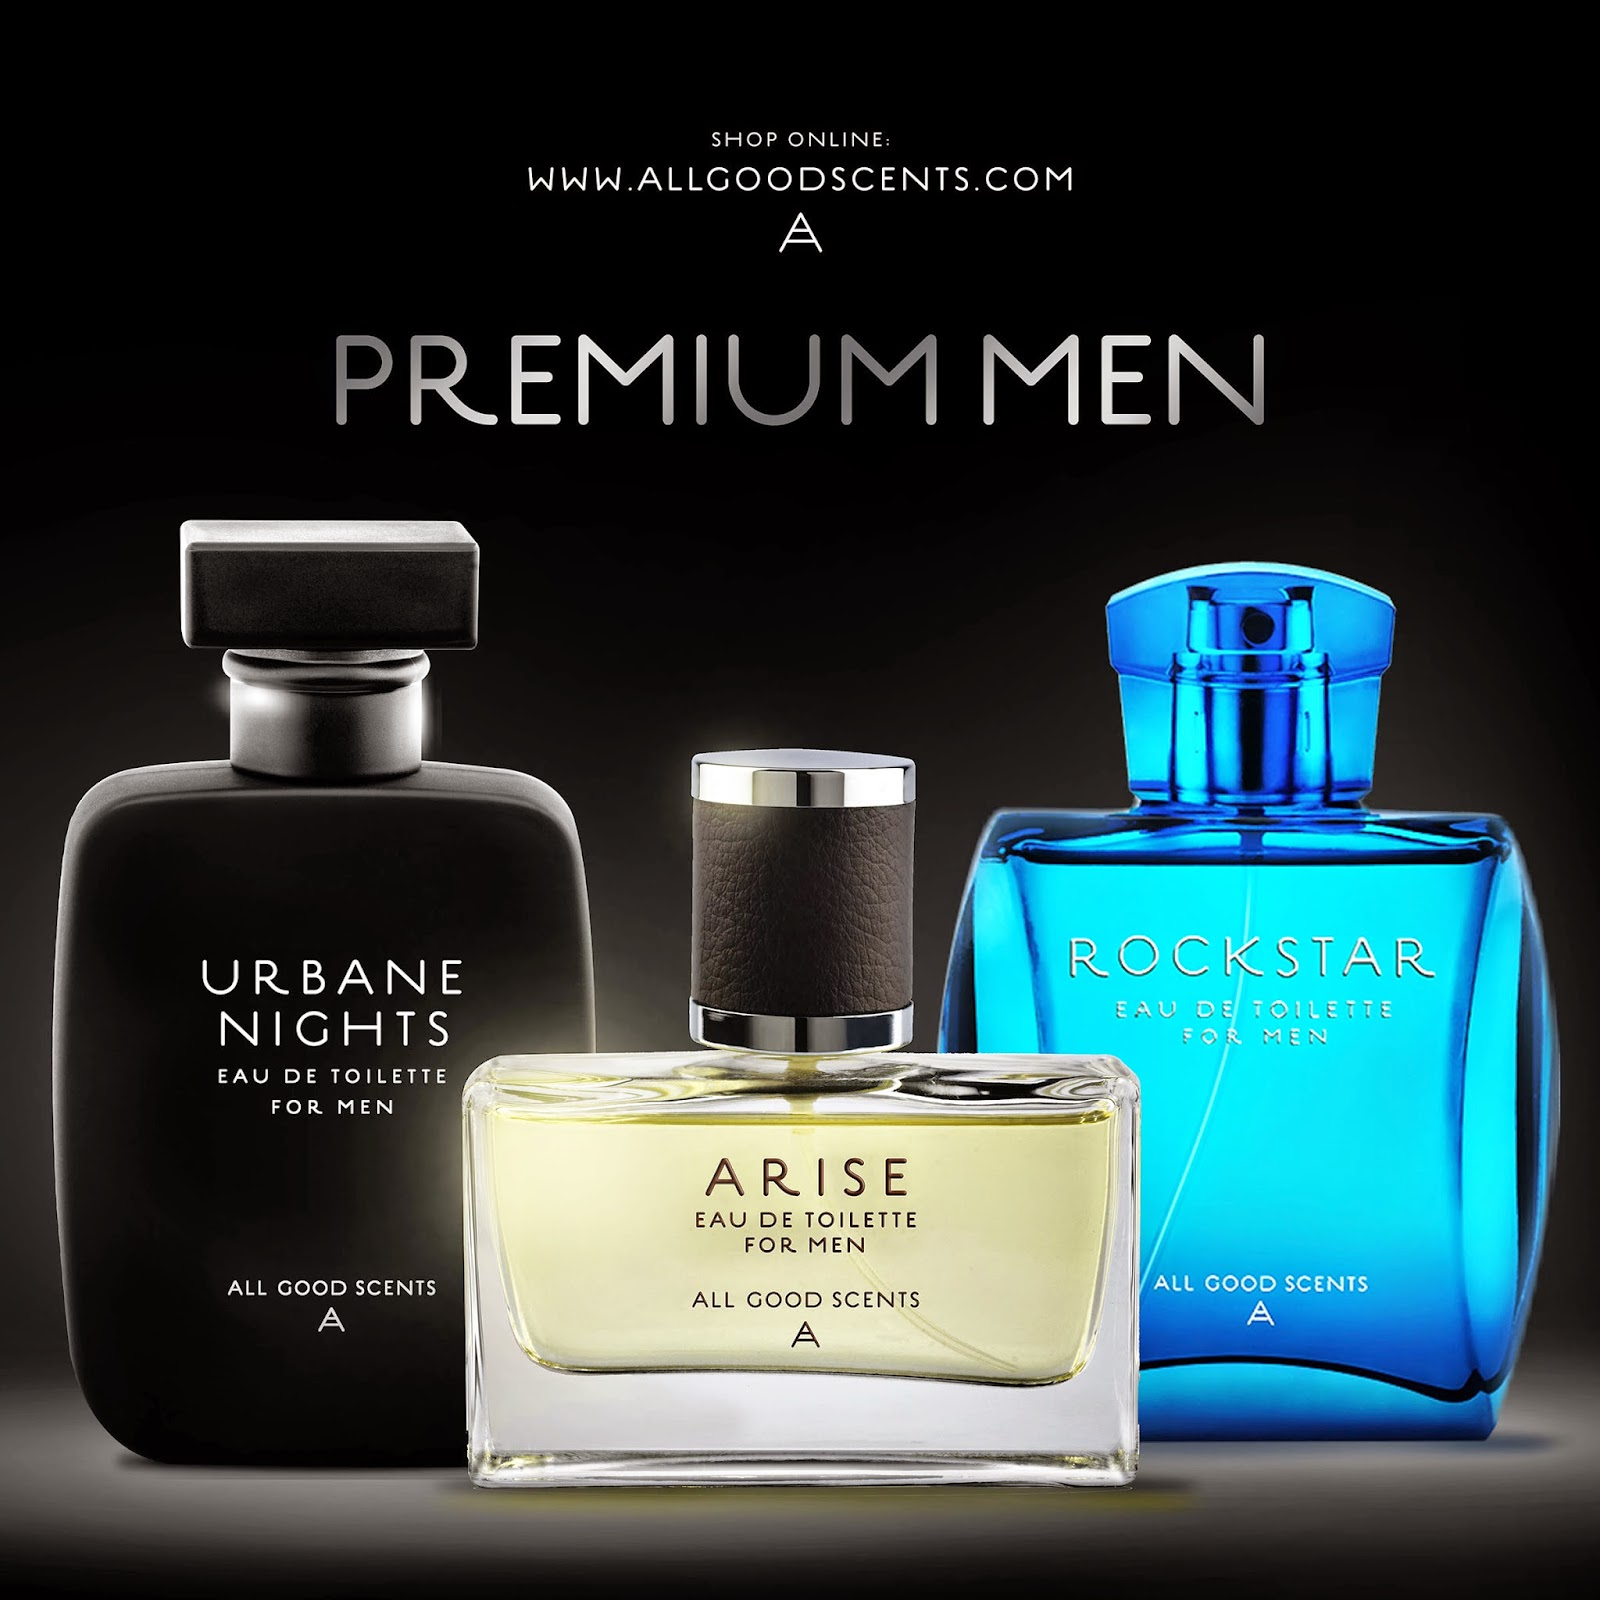 allgoodscents_perfume for men_iammr